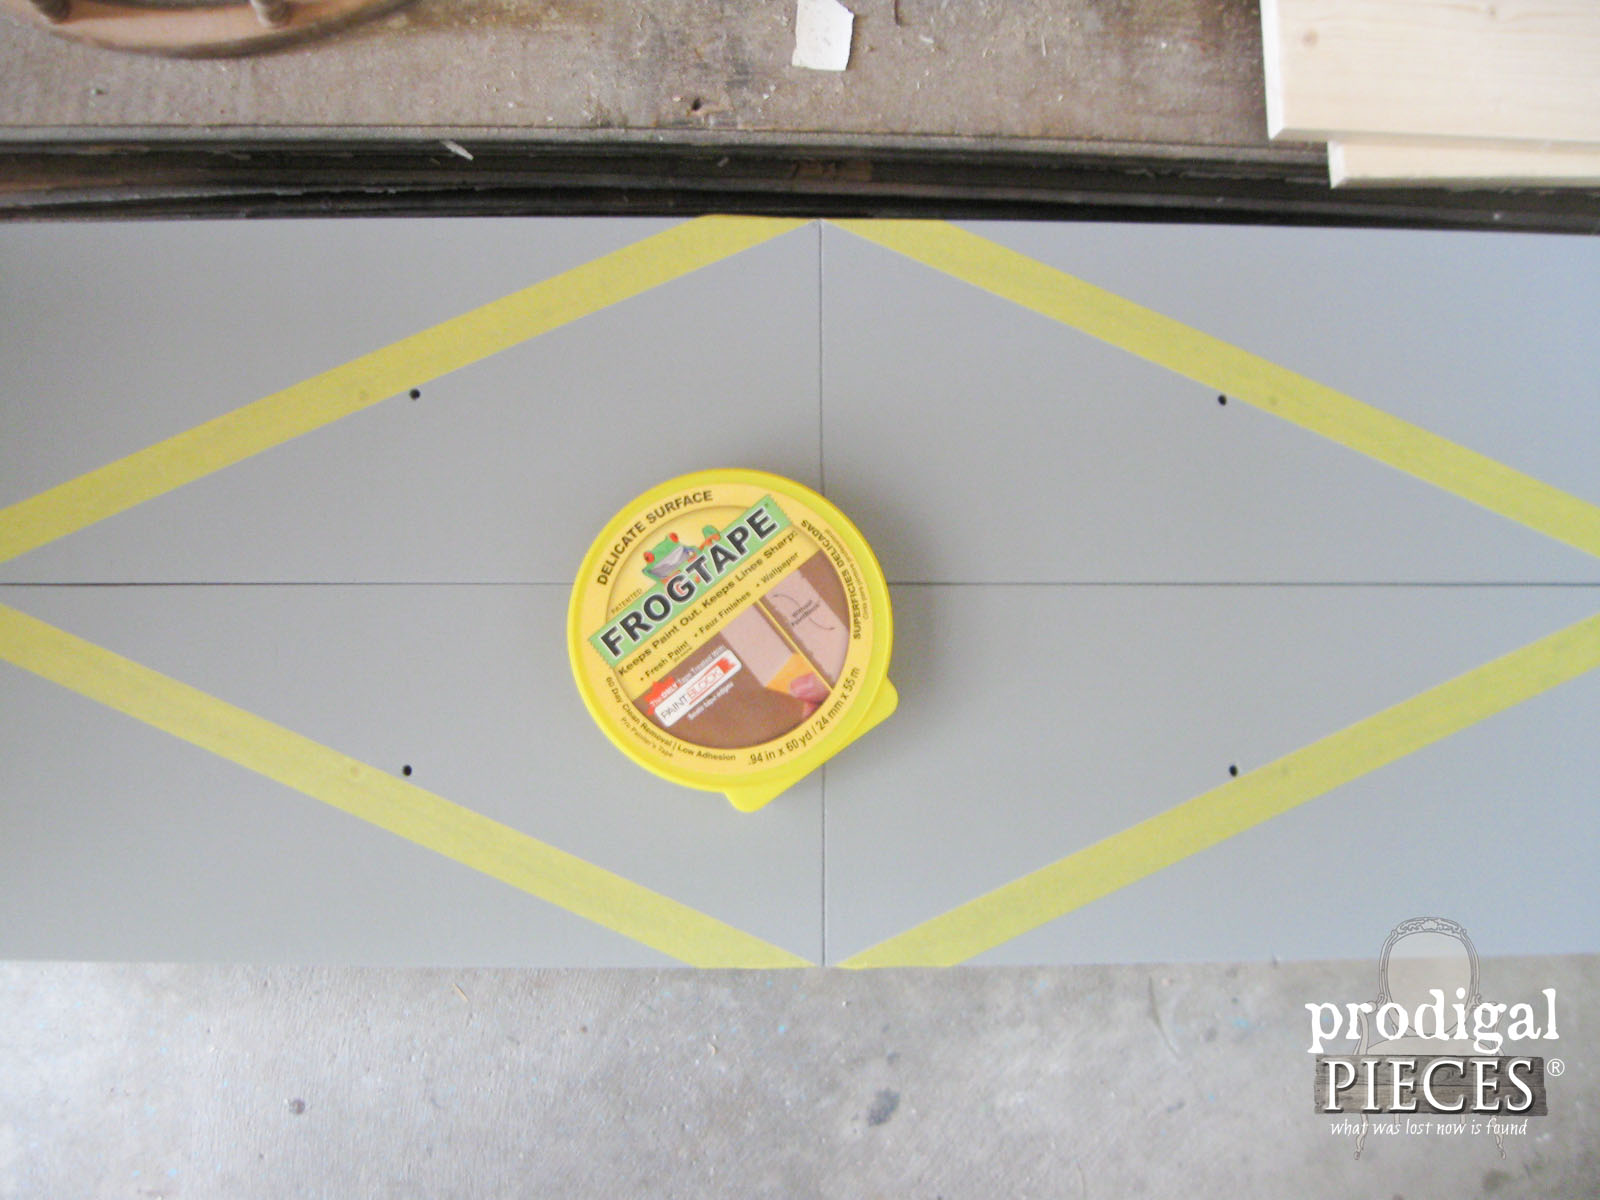 Using Frog Tape for Geometric Design on Entertainment Console | Prodigal Pieces | www.prodigalpieces.com